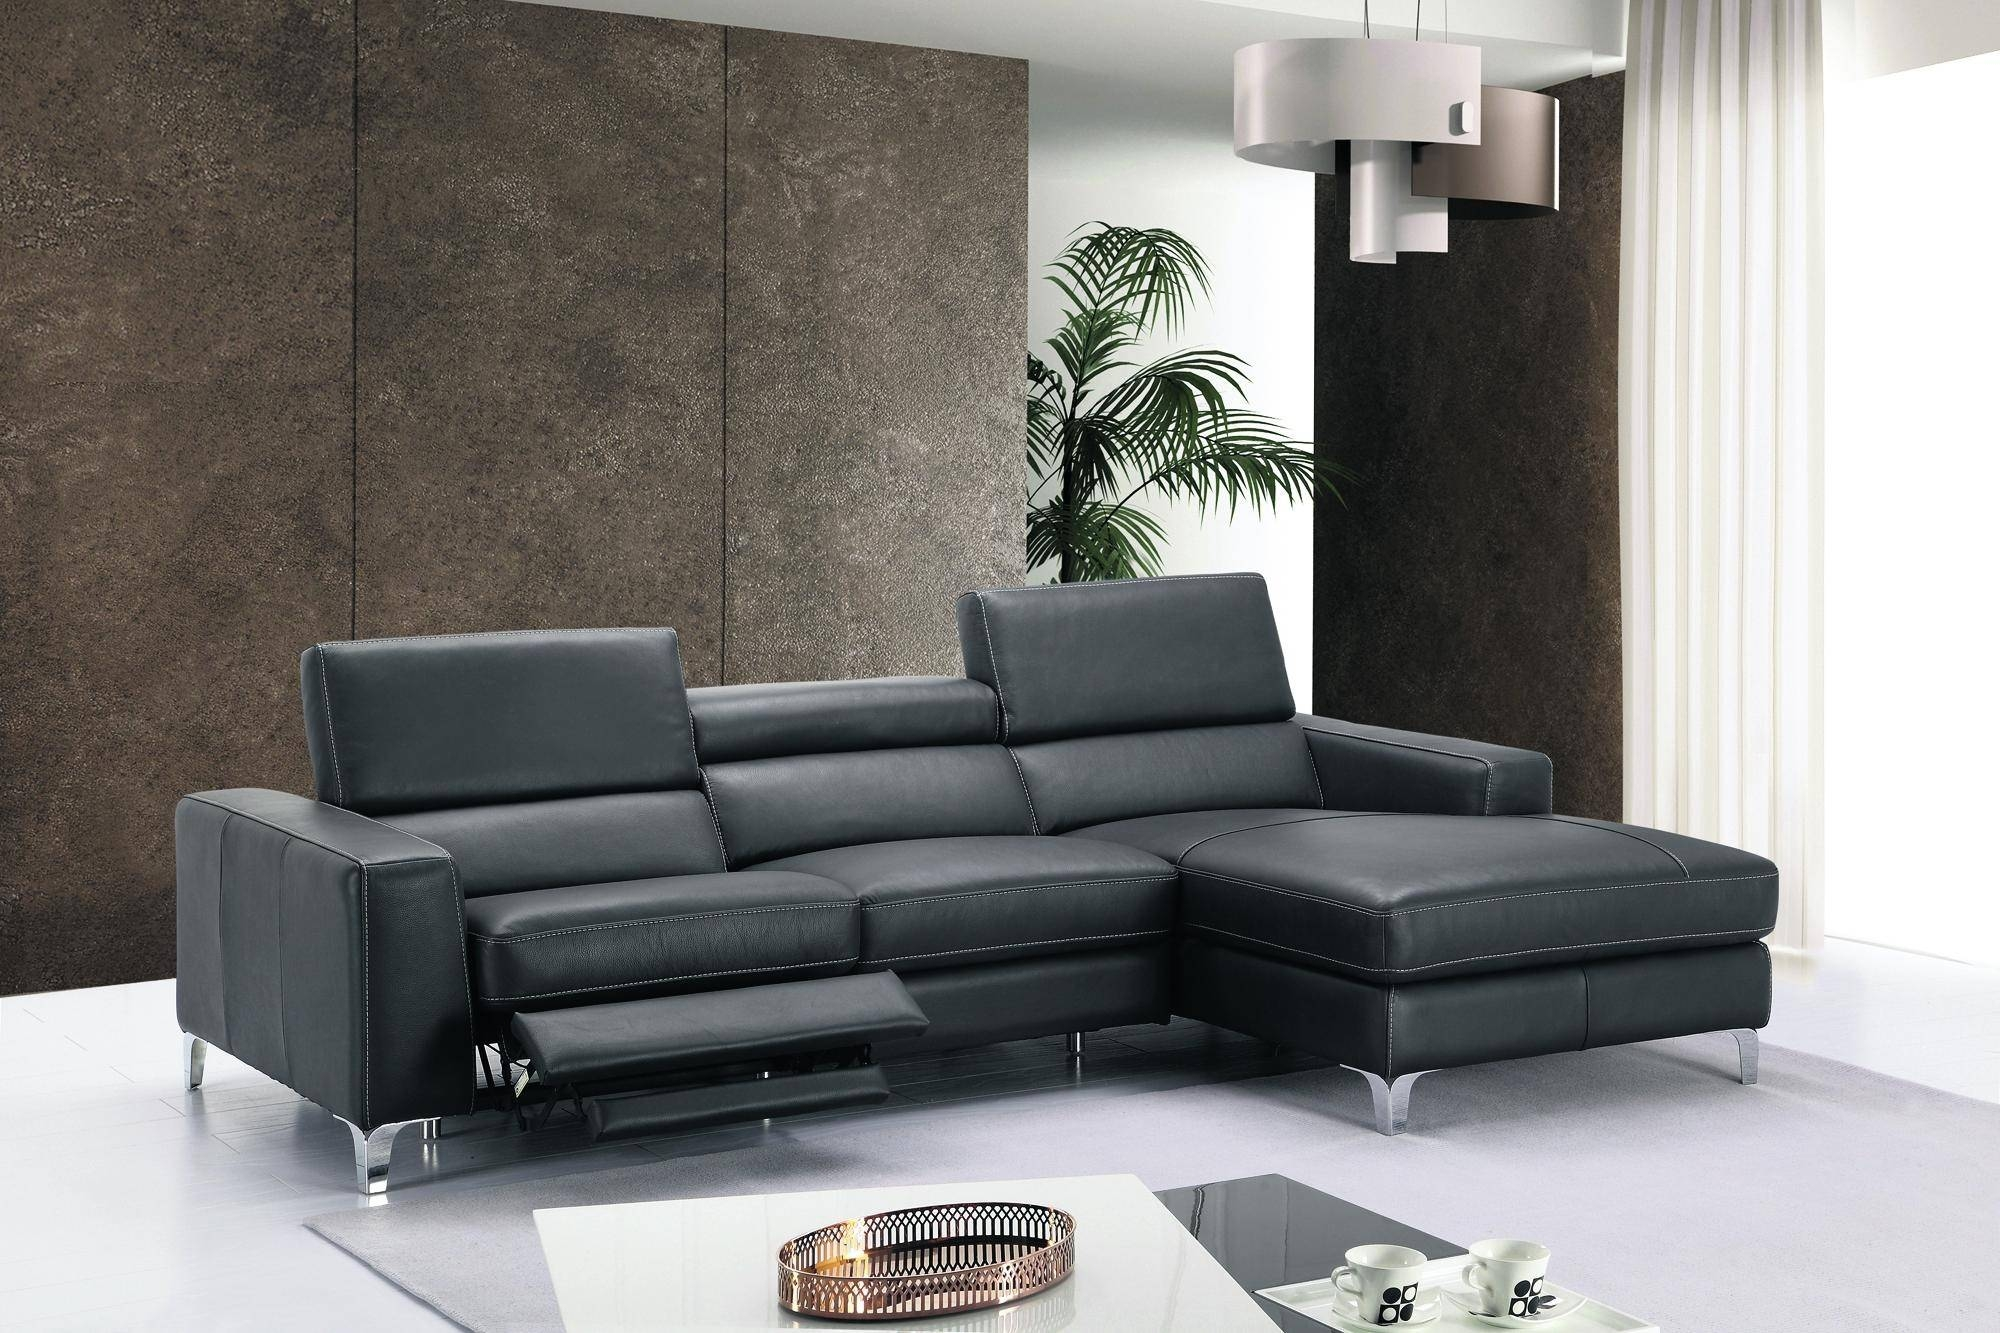 Sofa Ideas: Euro Sofas (Explore #4 Of 20 Photos) pertaining to Euro Sofas (Image 13 of 15)